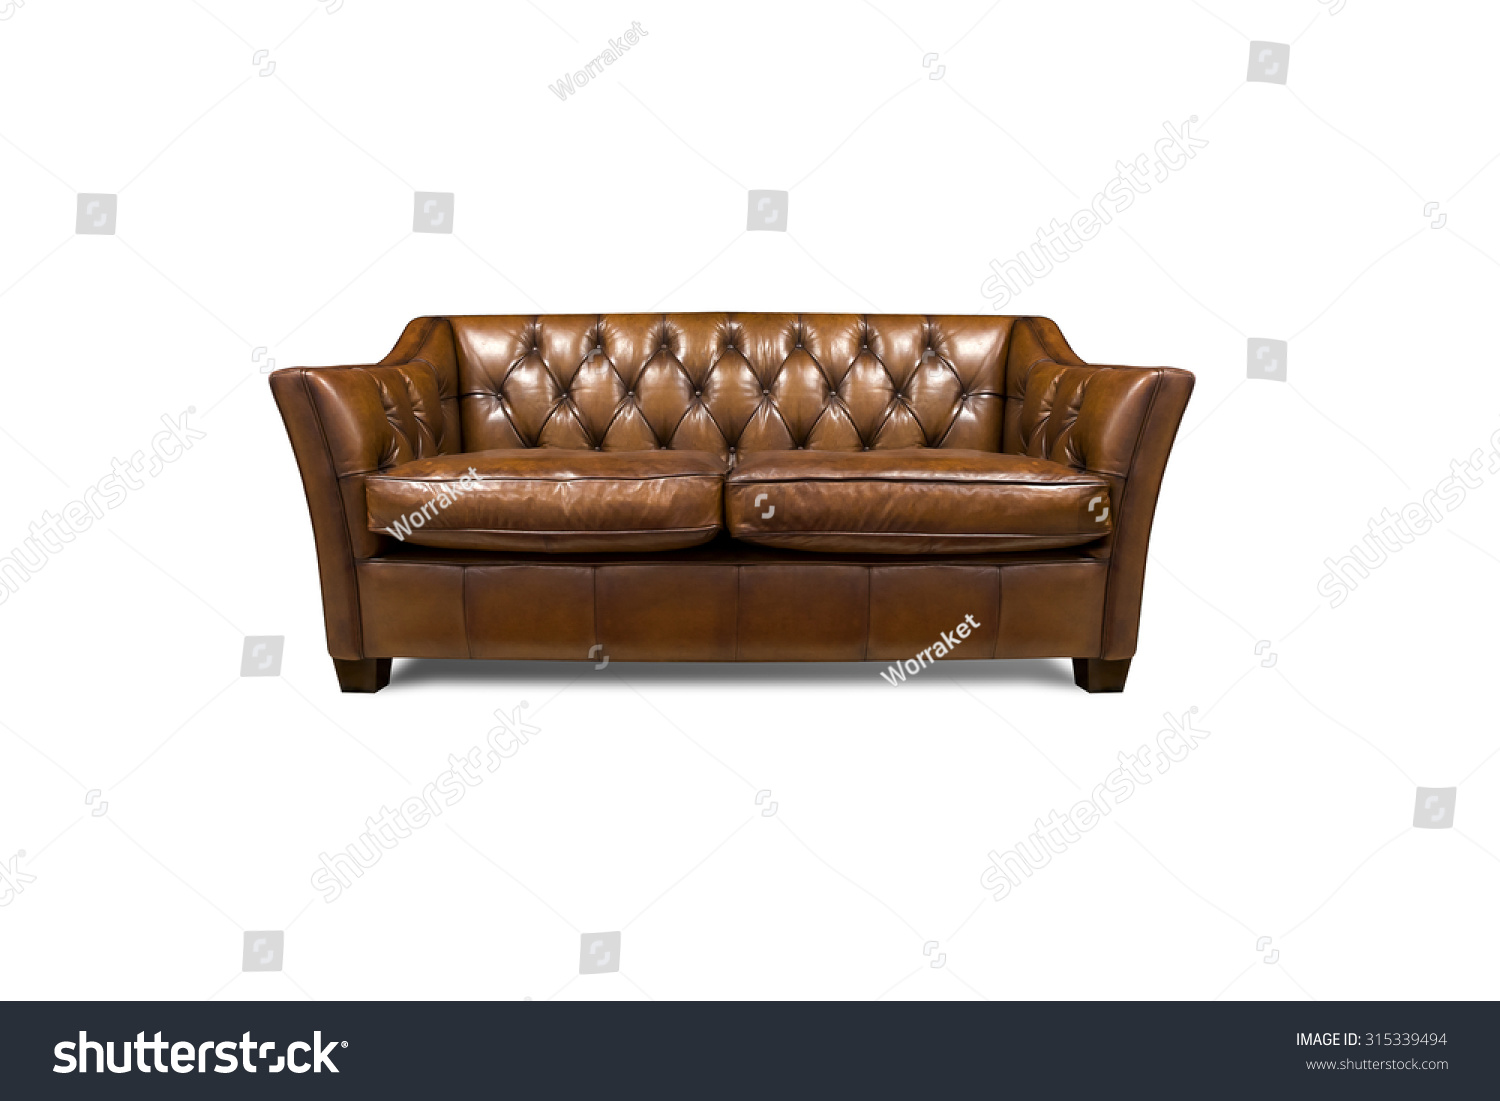 Sofa Leather Furniture Vintage Style Isolated Stock Photo  ~ Leather Sofa Vintage Style